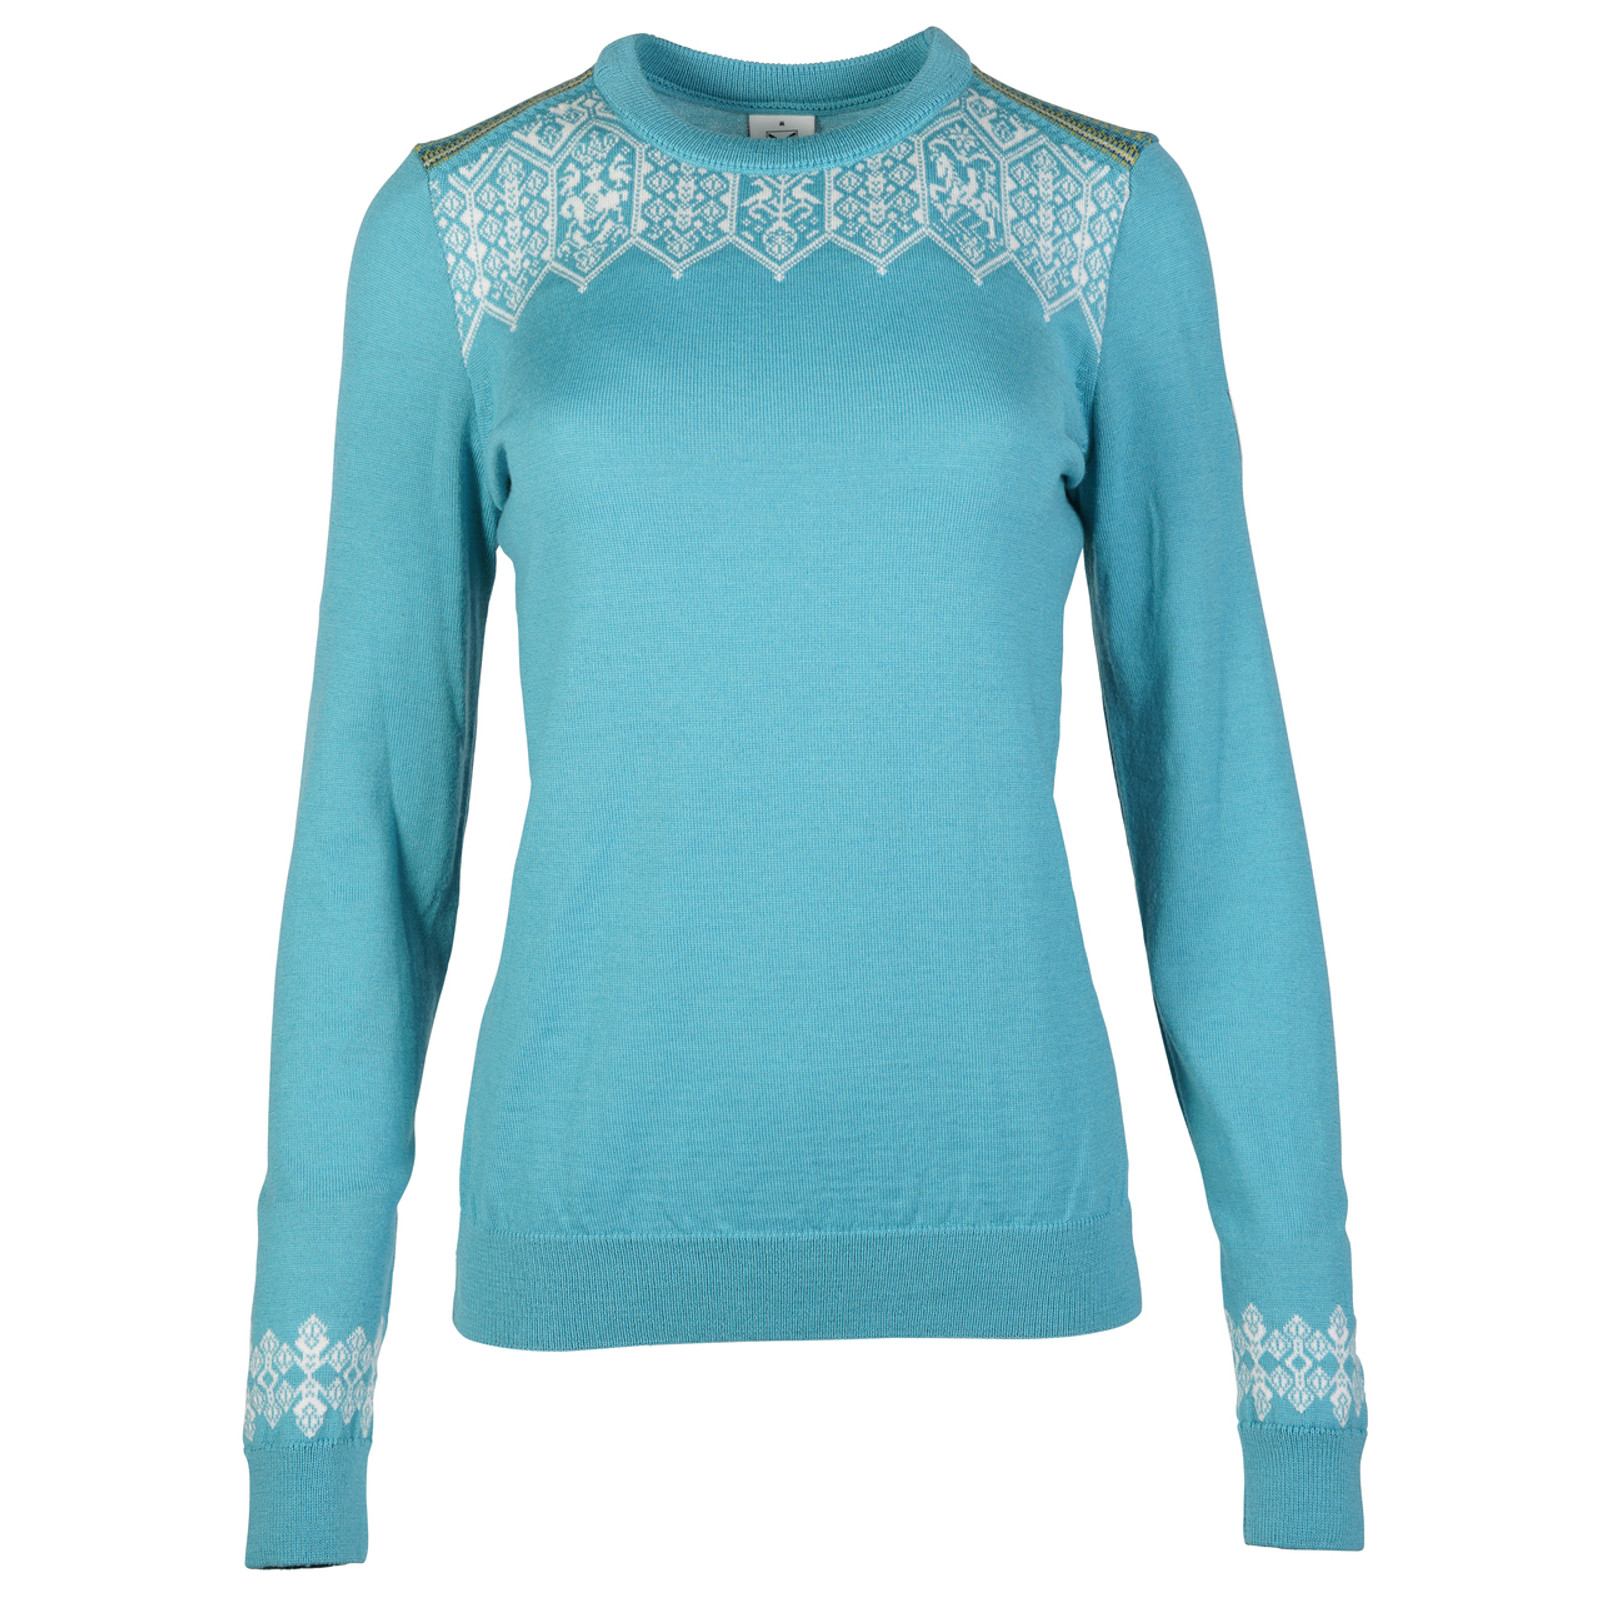 Ladies Dale of Norway Lillehammer Sweater in Turquoise 93261-G